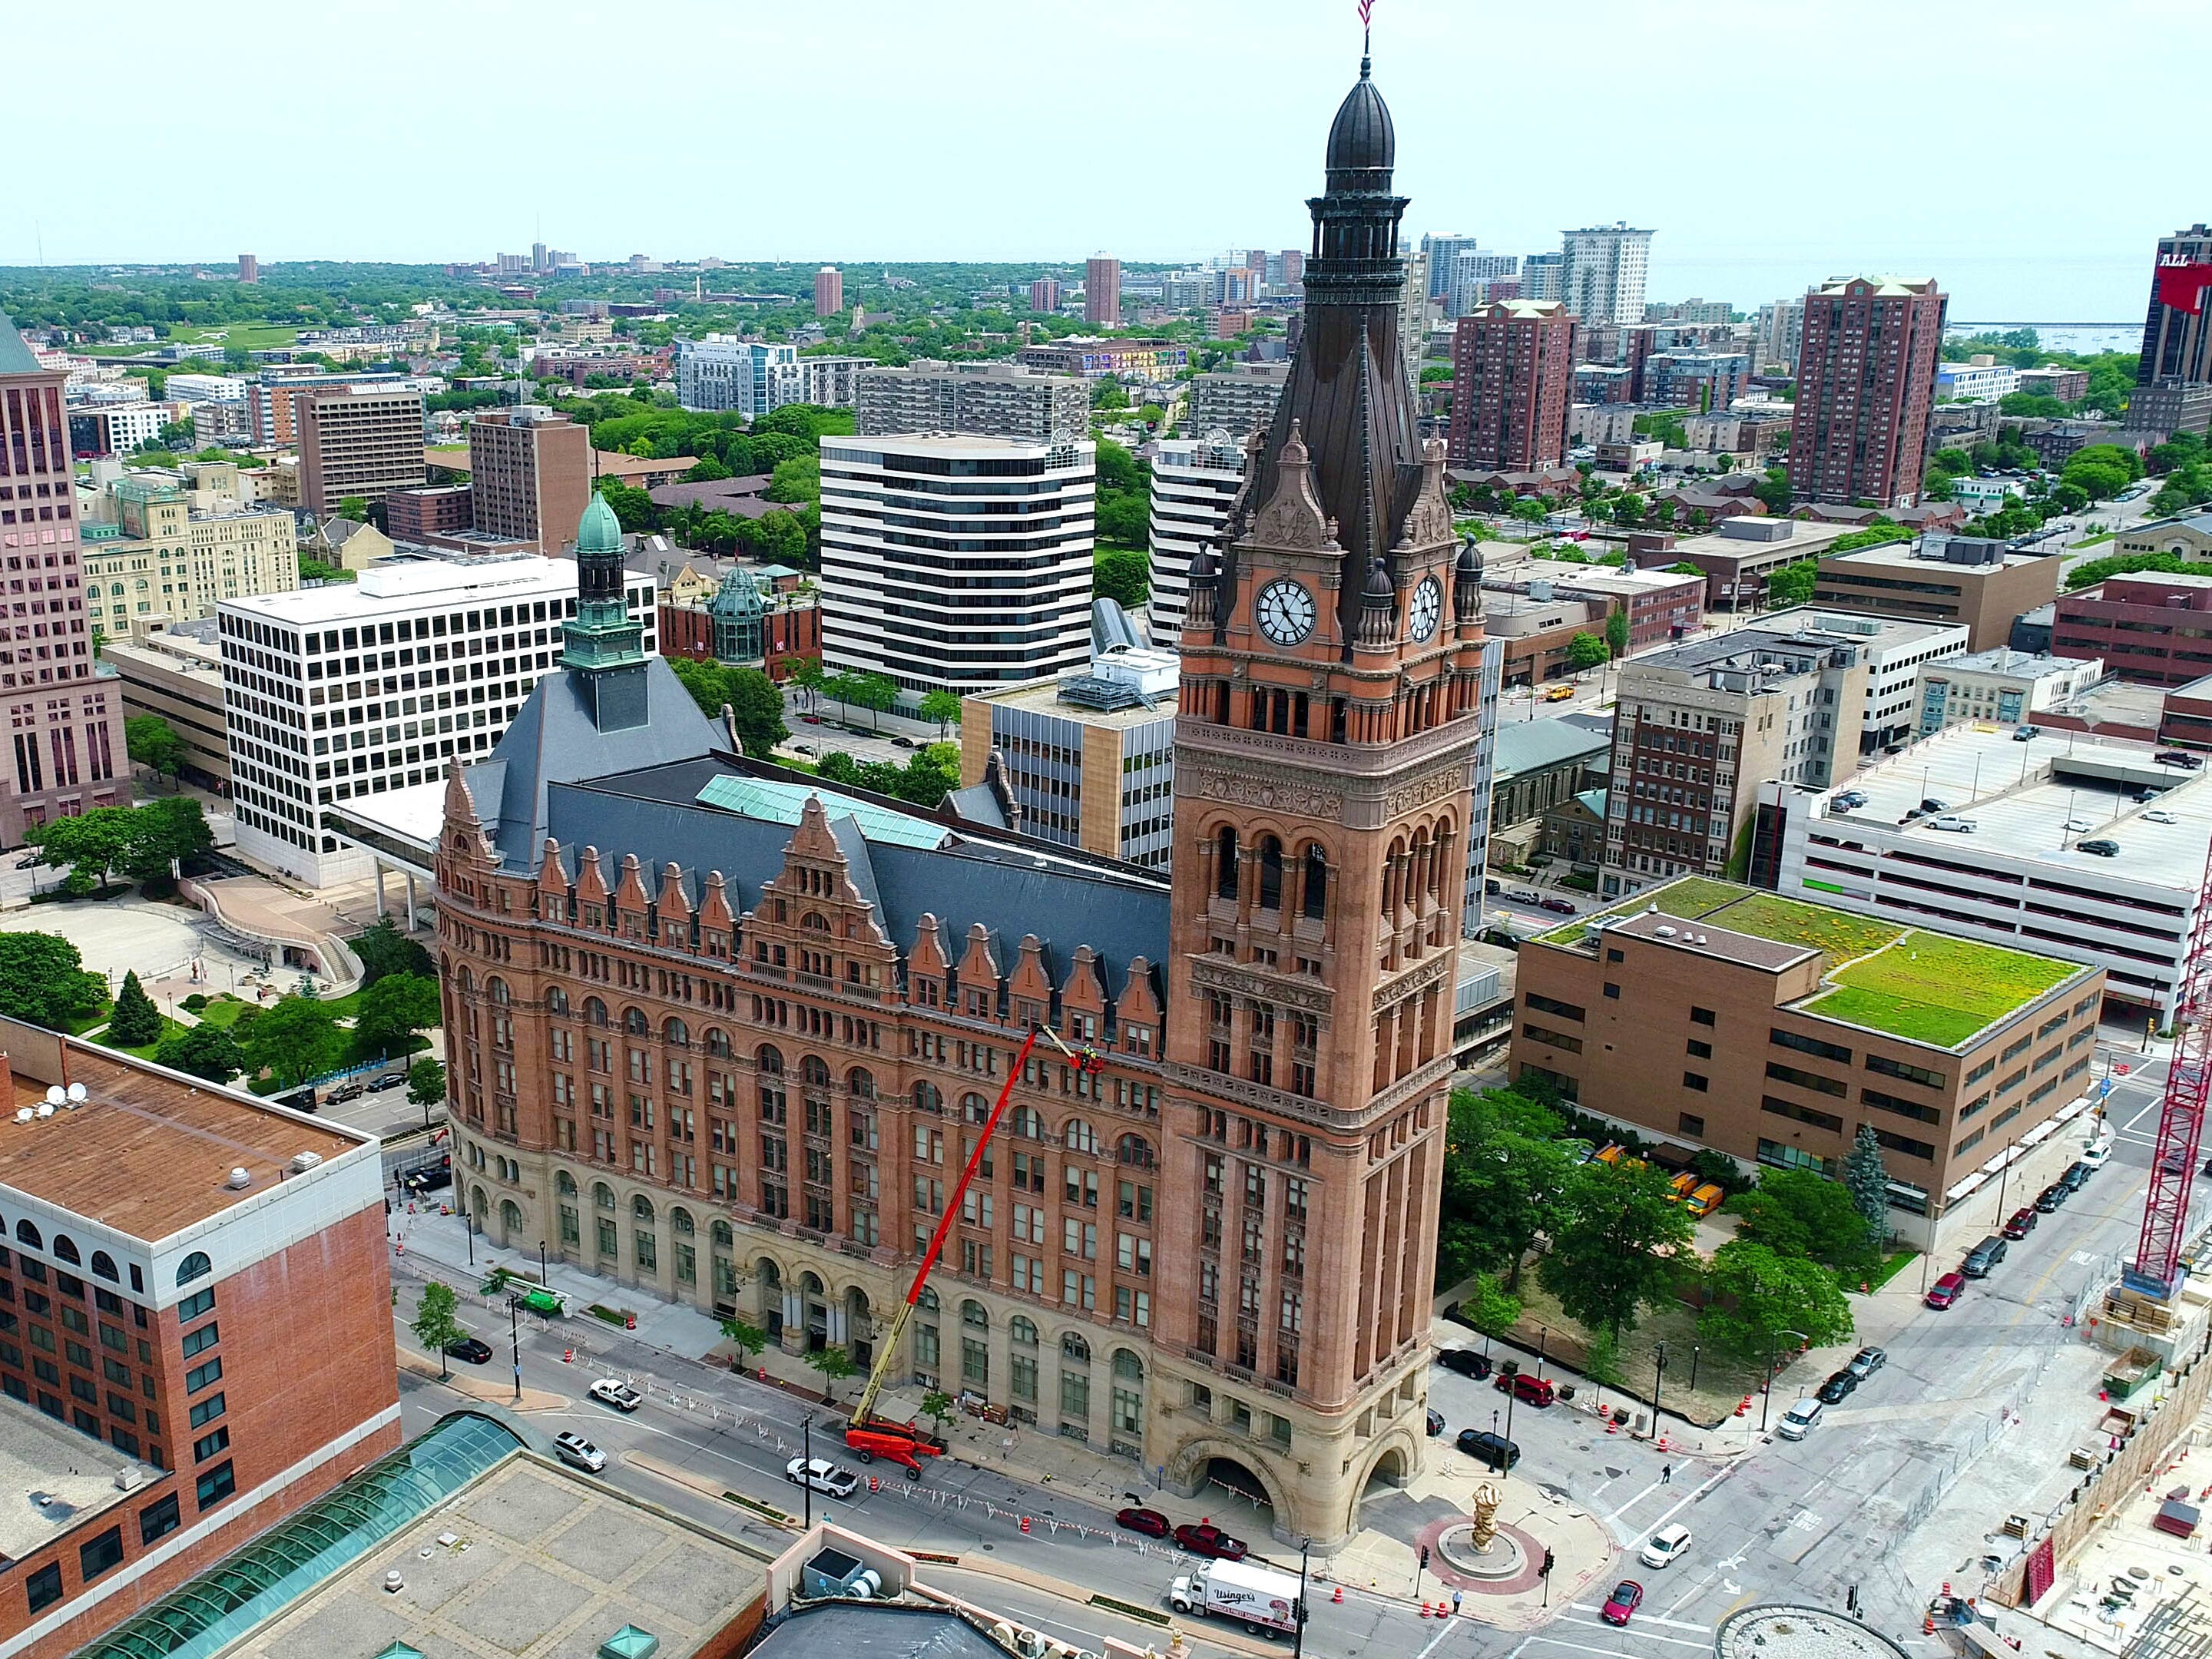 Politico: Milwaukee is the odds-on favorite to host 2020 Democratic National Convention